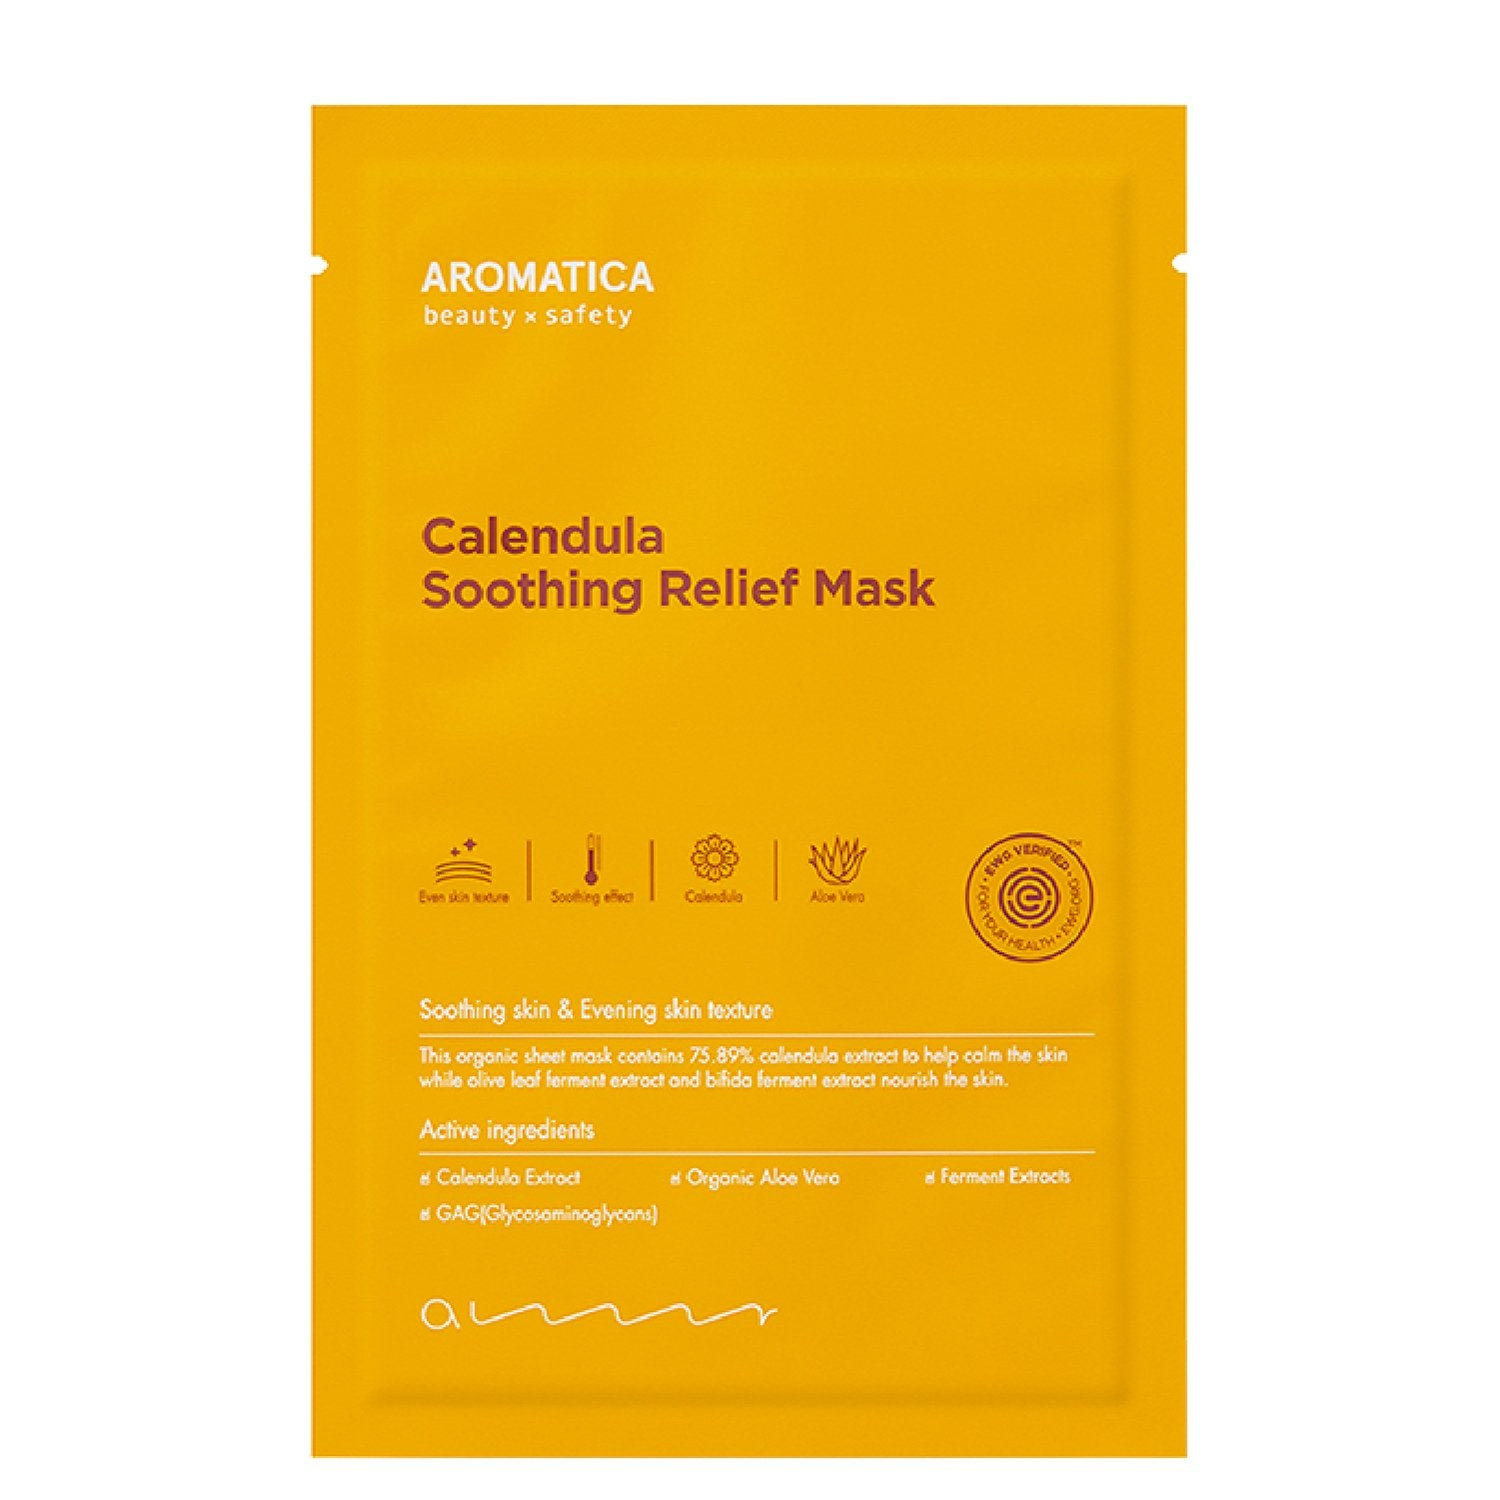 Aromatica Calendula Soothing Relief Mask (5 pack) Sheet Mask - Skinspace